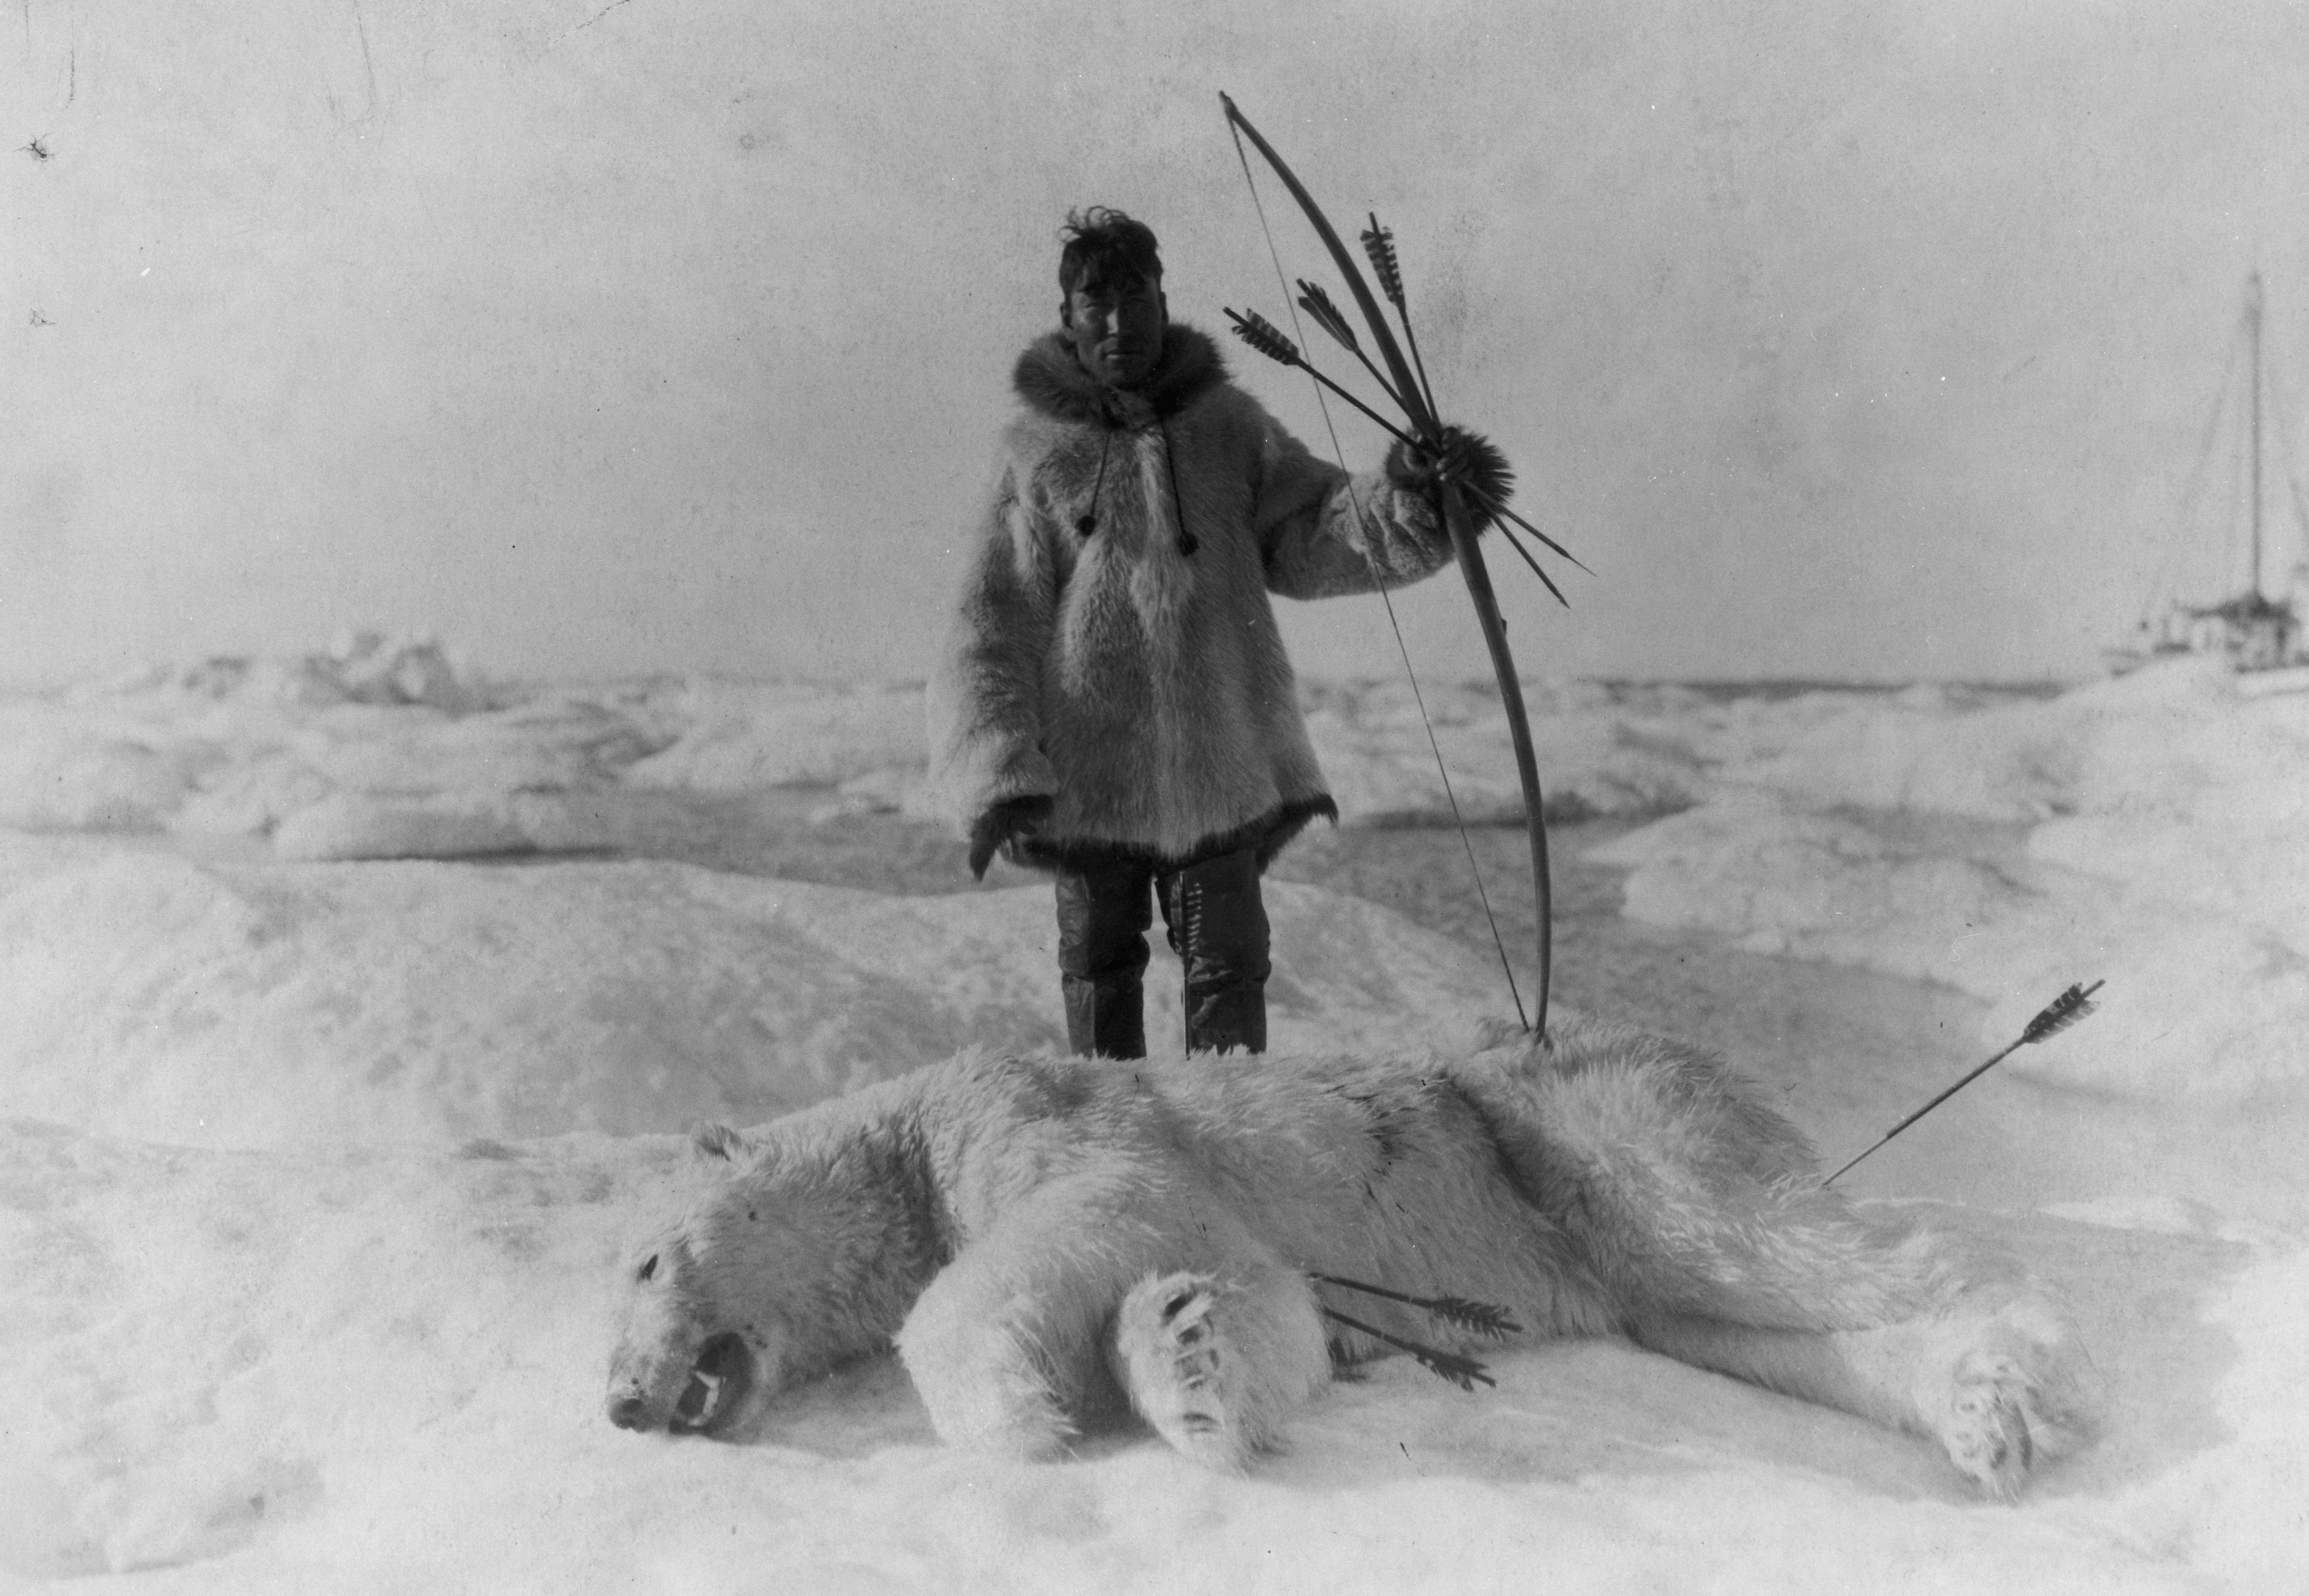 inuit of the arctic The inuit have lived in alaska for at least the last 7,000 years and have since migrated all around the arctic the inuit adapted to their environment, and because the environment in the arctic is so unique, the people that inhabit it are masters of surviving in one of the harshest environments on earth.